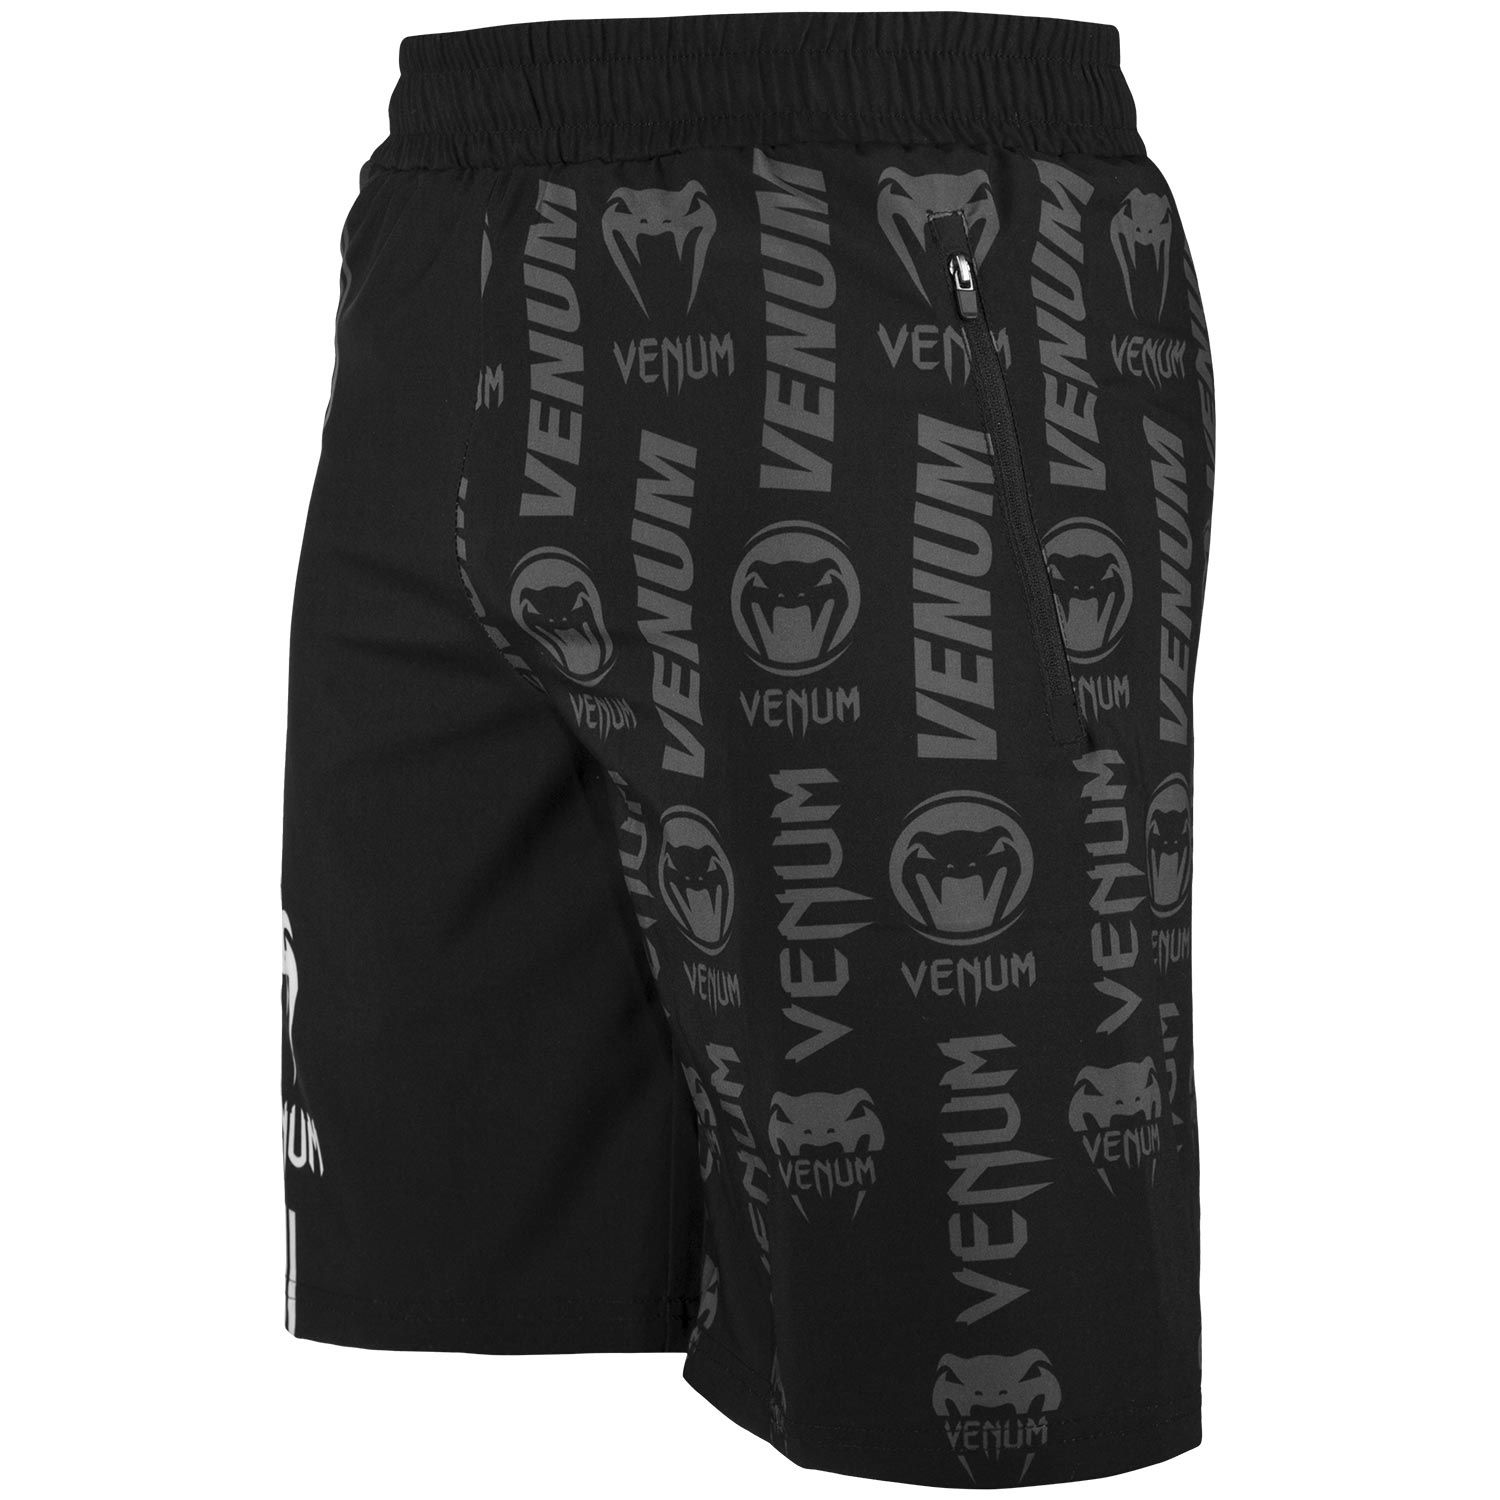 Шорты Venum Logos Training Shorts Black/White фото 2